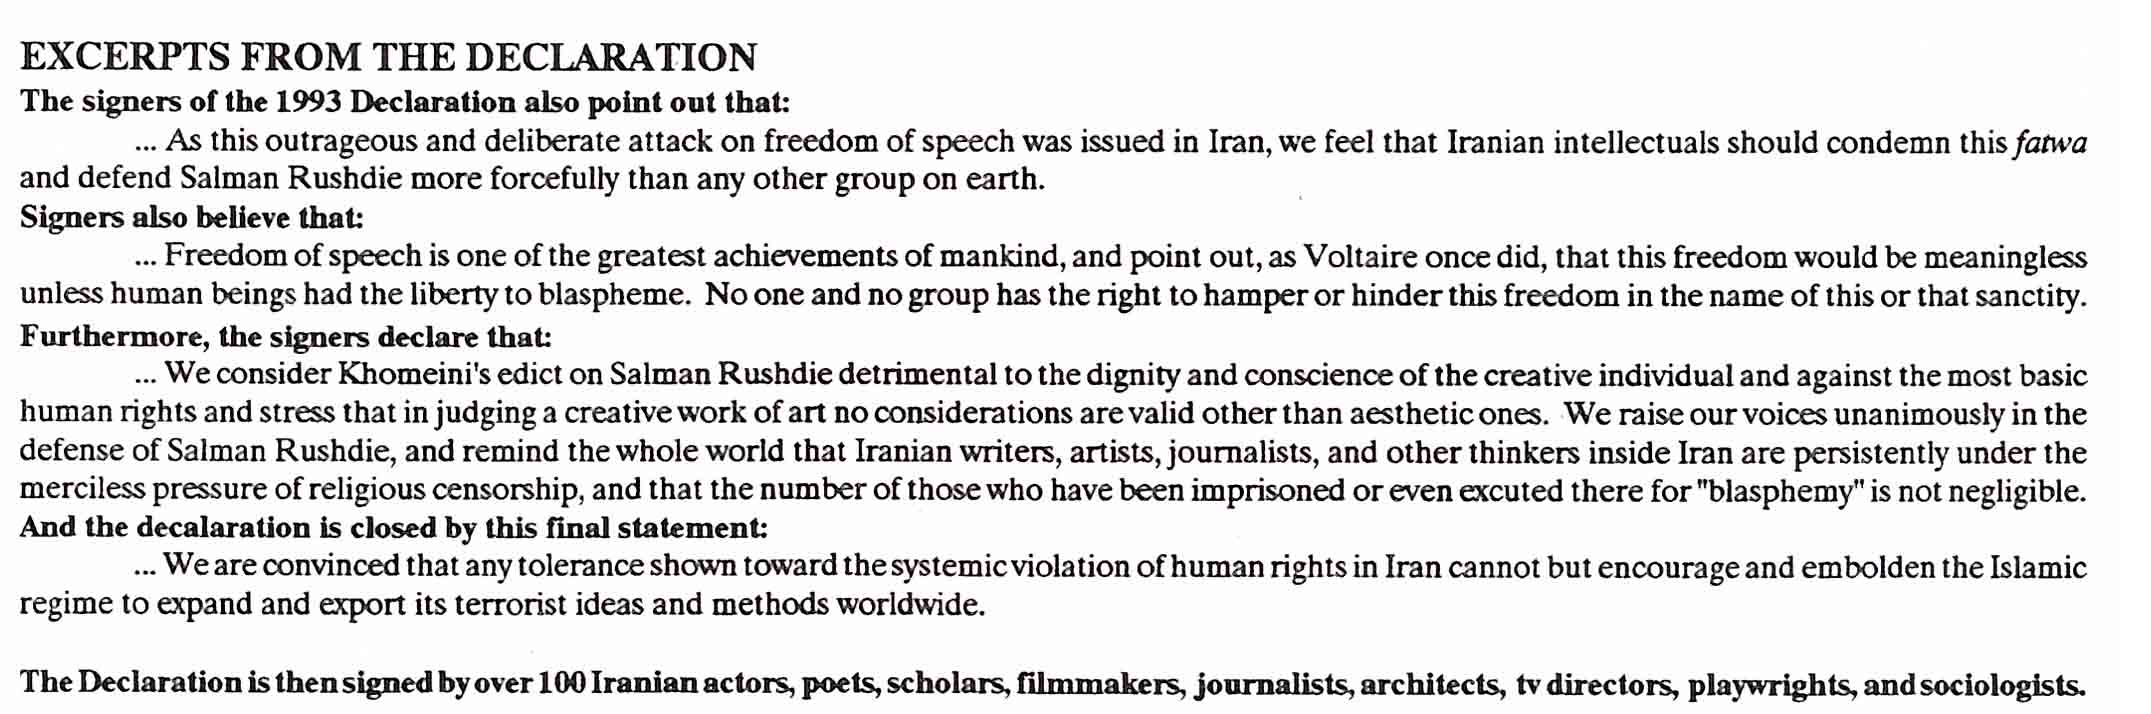 Extracts from the Iranian declaration in support of Salman Rushdie